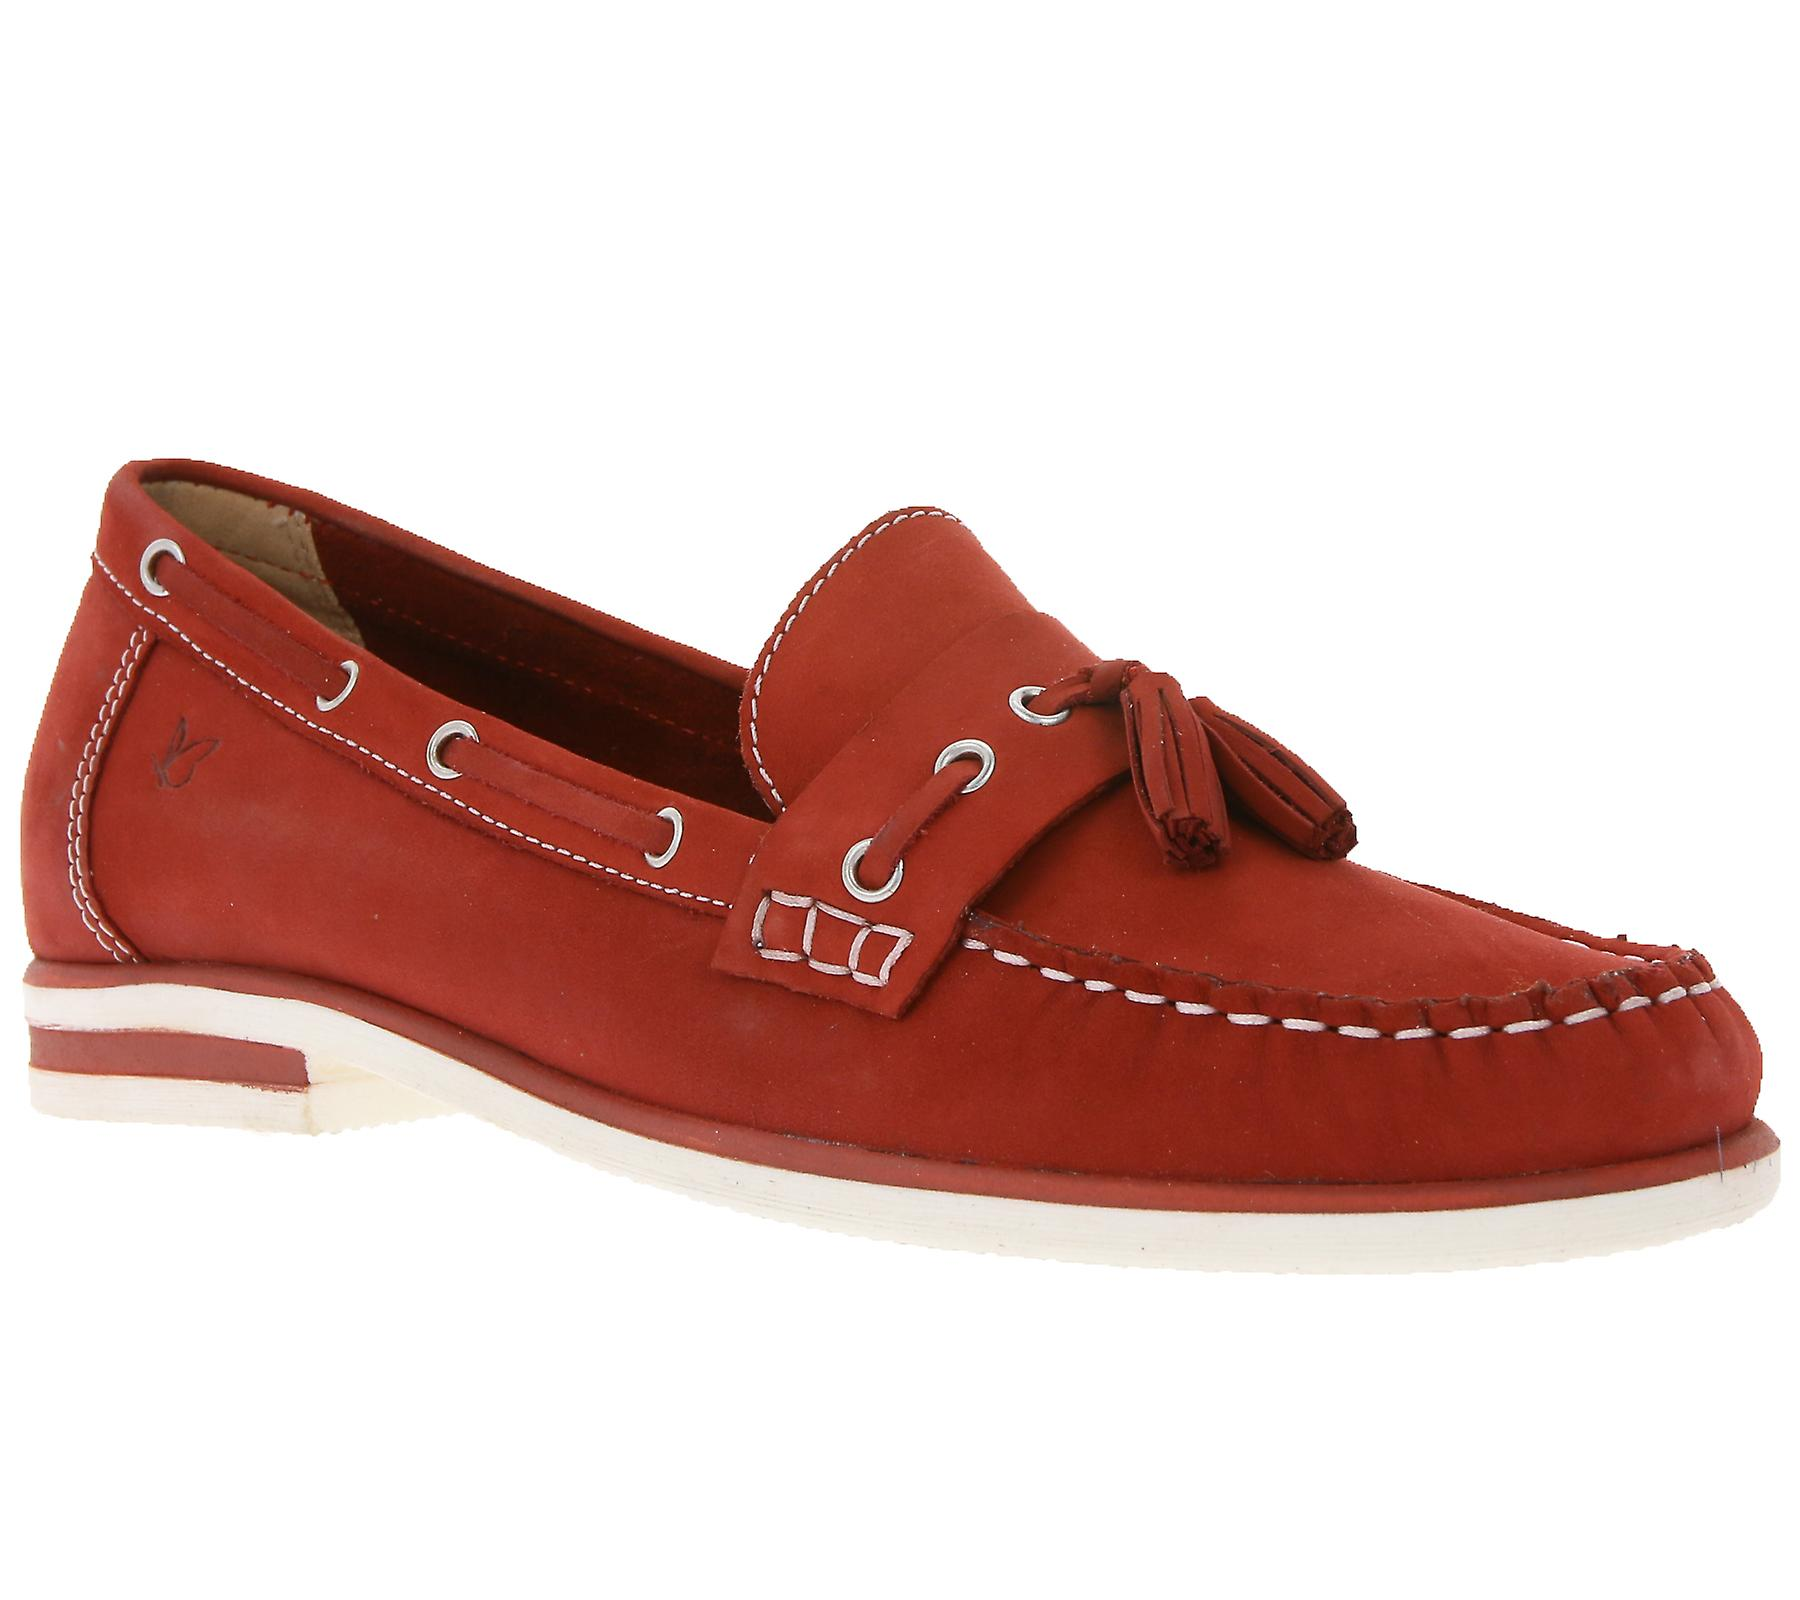 Caprice women leather moccasins, boat shoes women Caprice Red 246e44